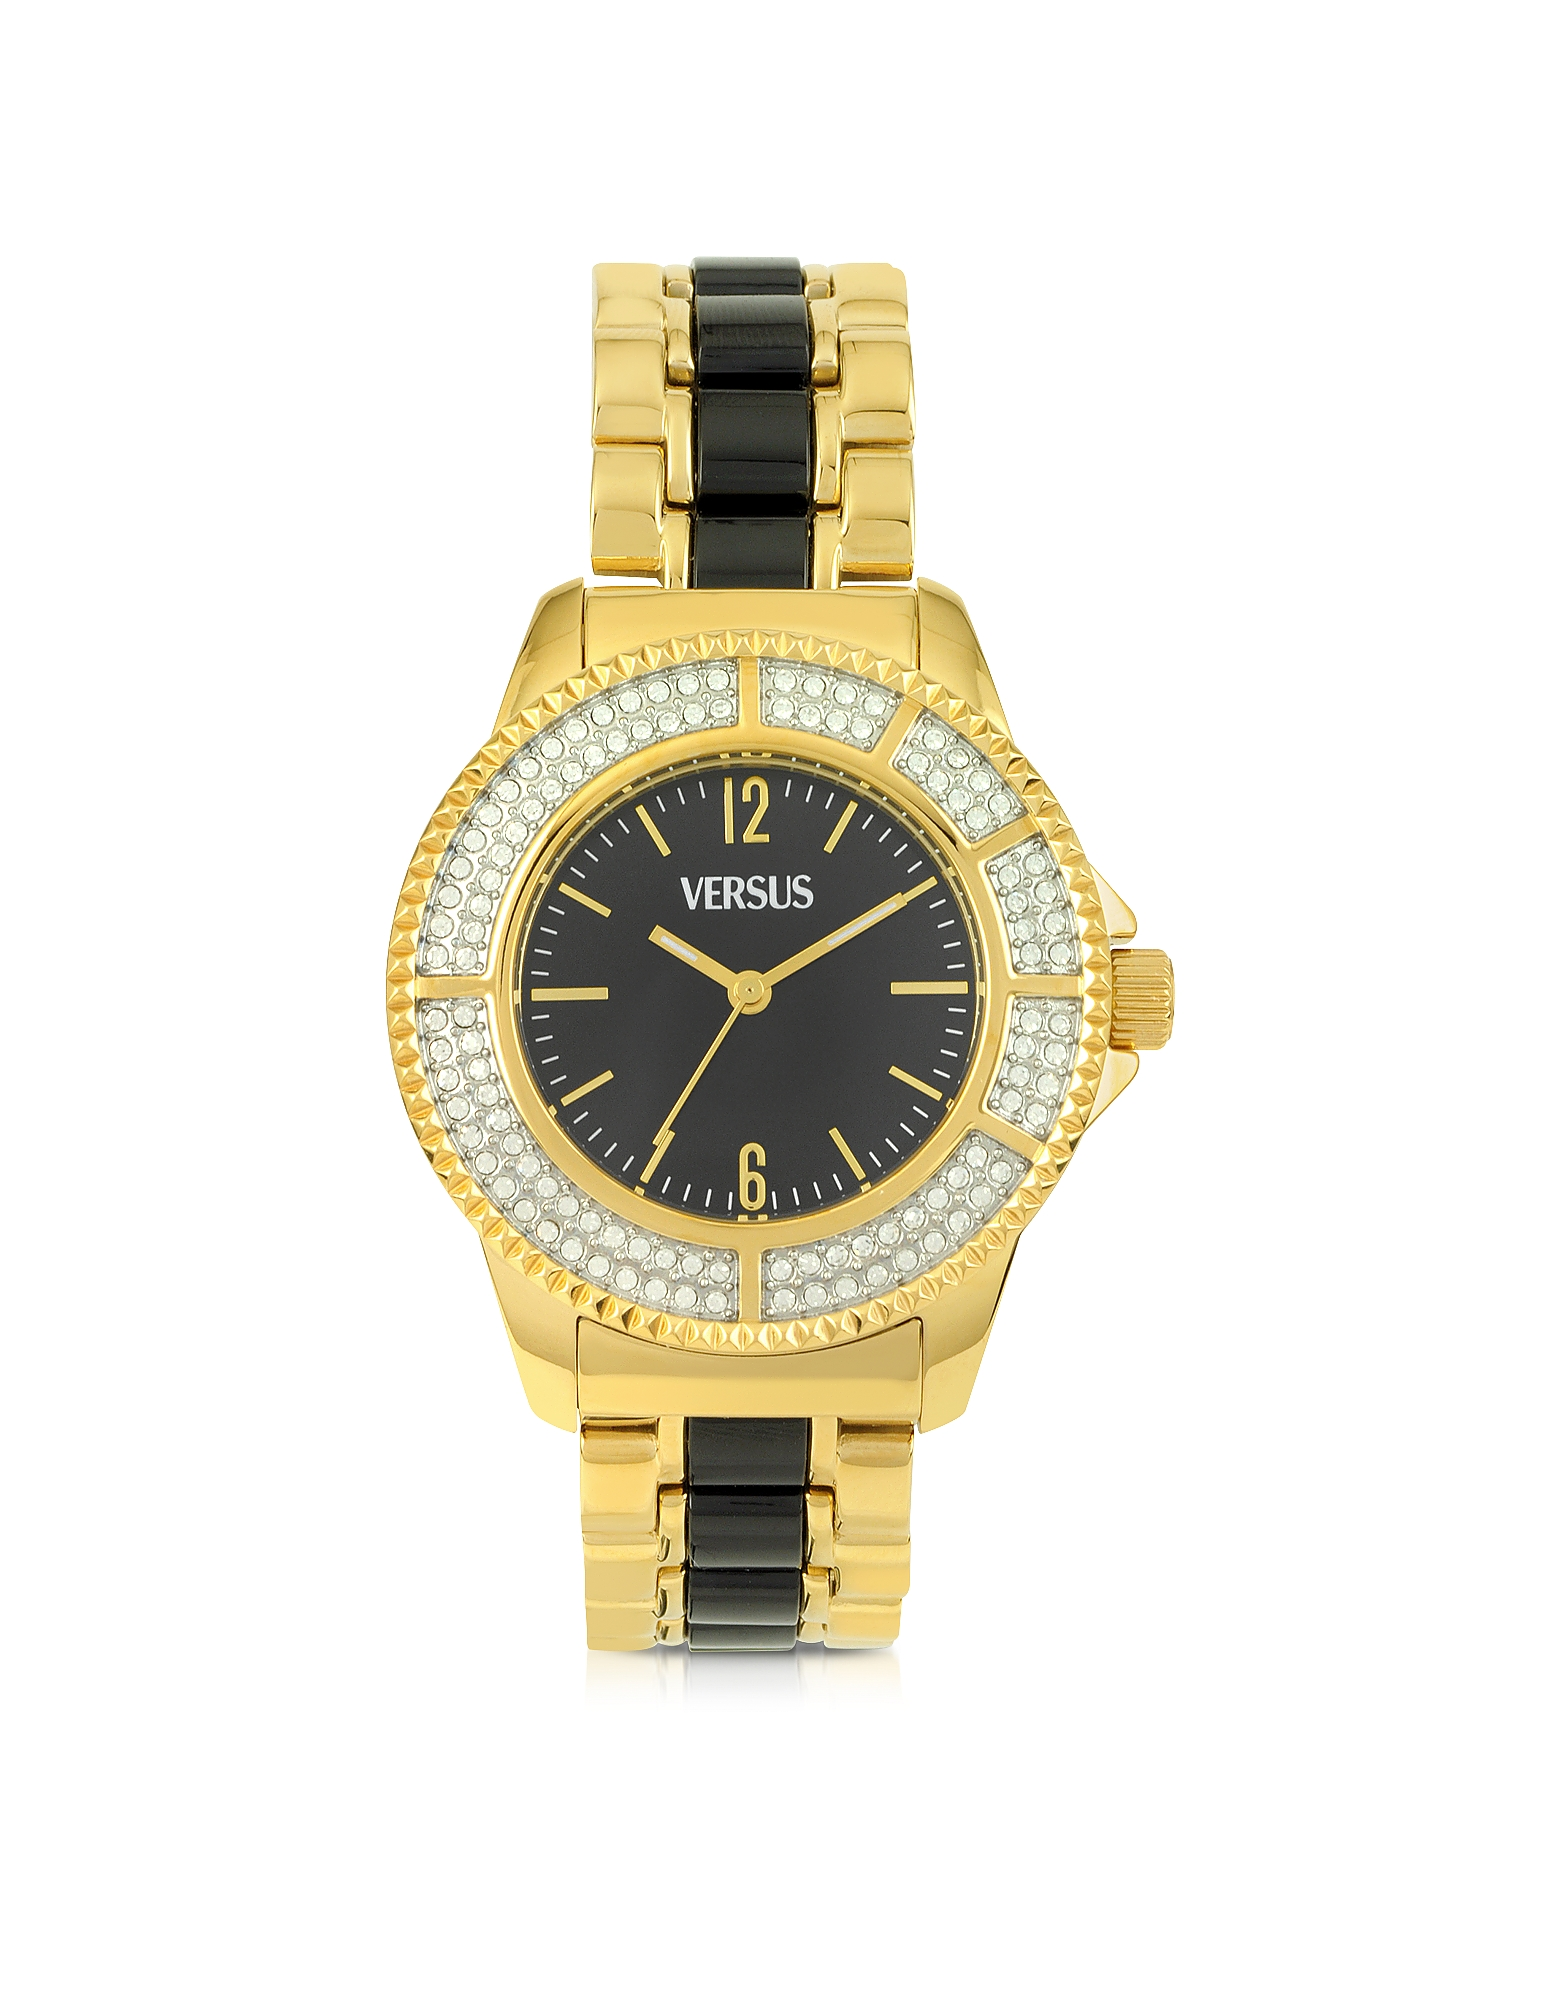 Versace Versus Women's Watches, Tokyo Crystal 38 Gold and Black Women's Watch